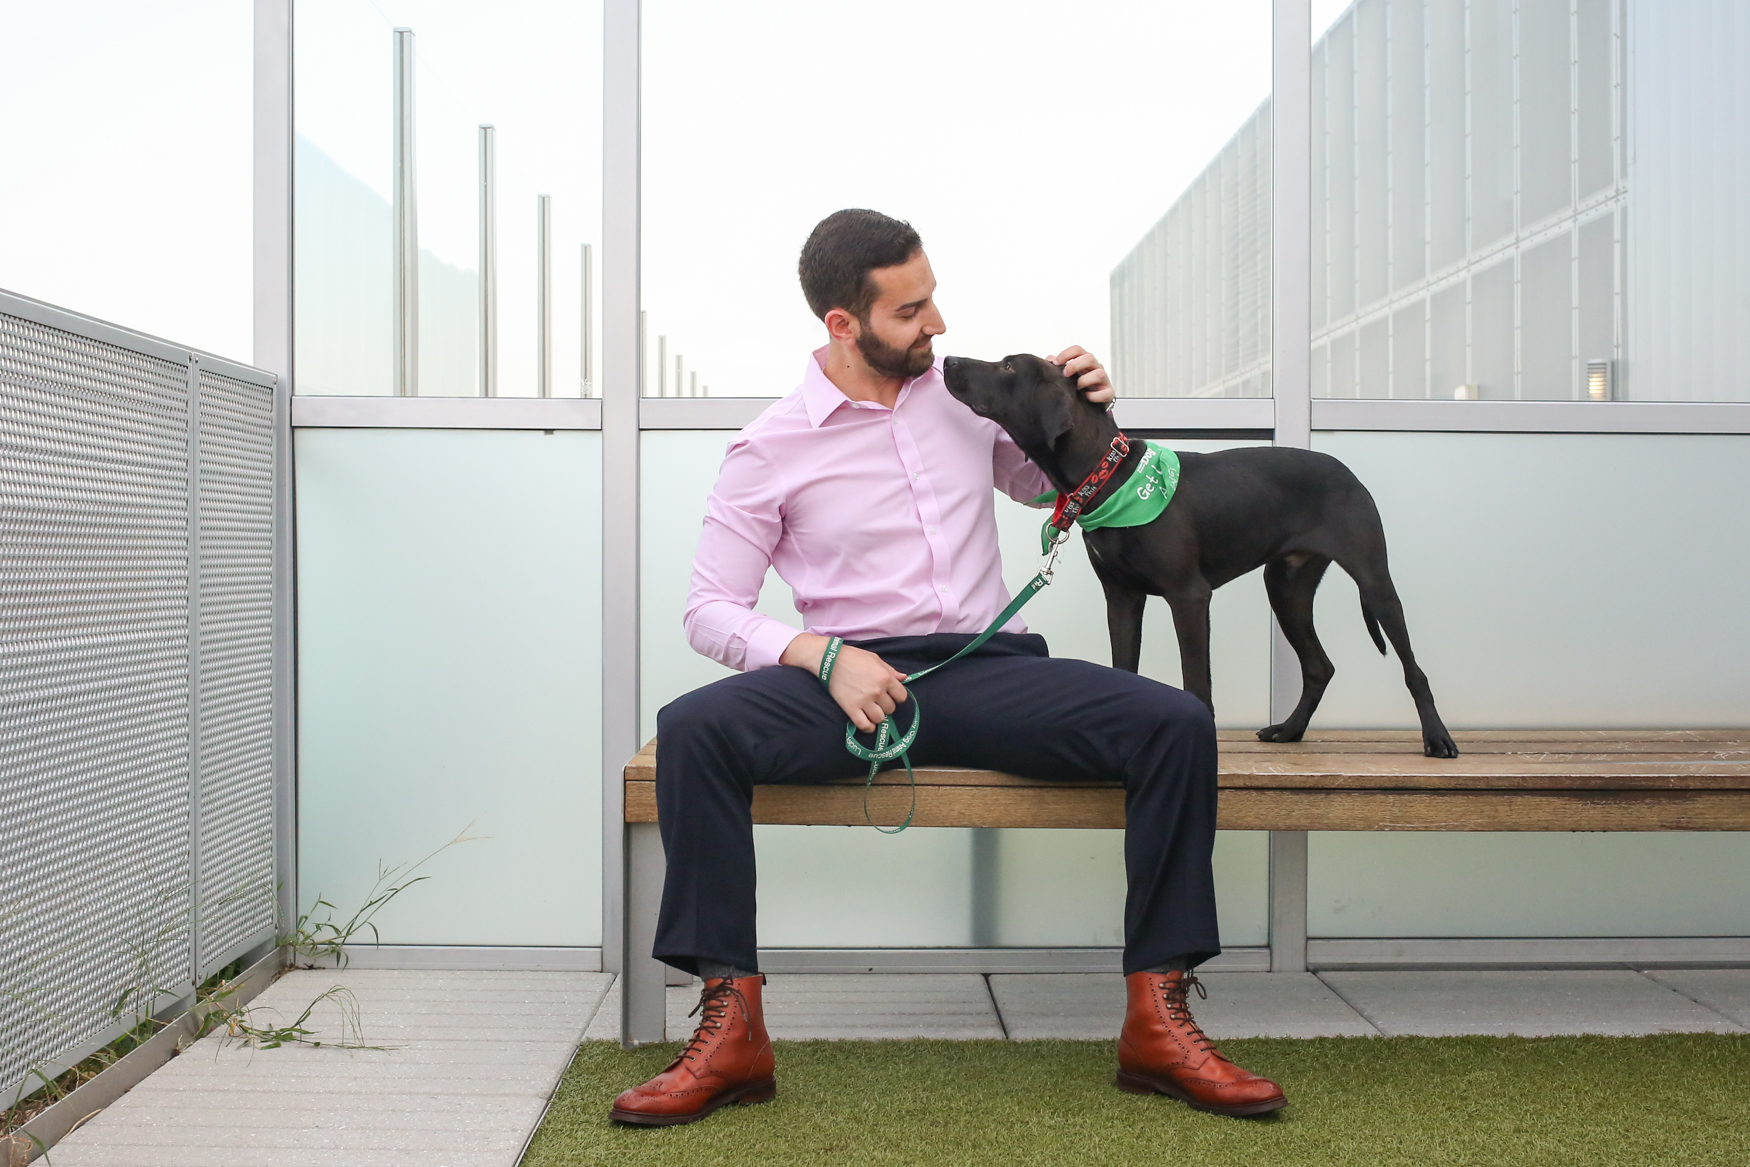 Meet Podge and Michael, a 9-month-old lab mix and a 31-year-old human respectively. Photo location: City Market at O Apartments Rooftop Dog Park (Image: Amanda Andrade-Rhoades/ DC Refined)